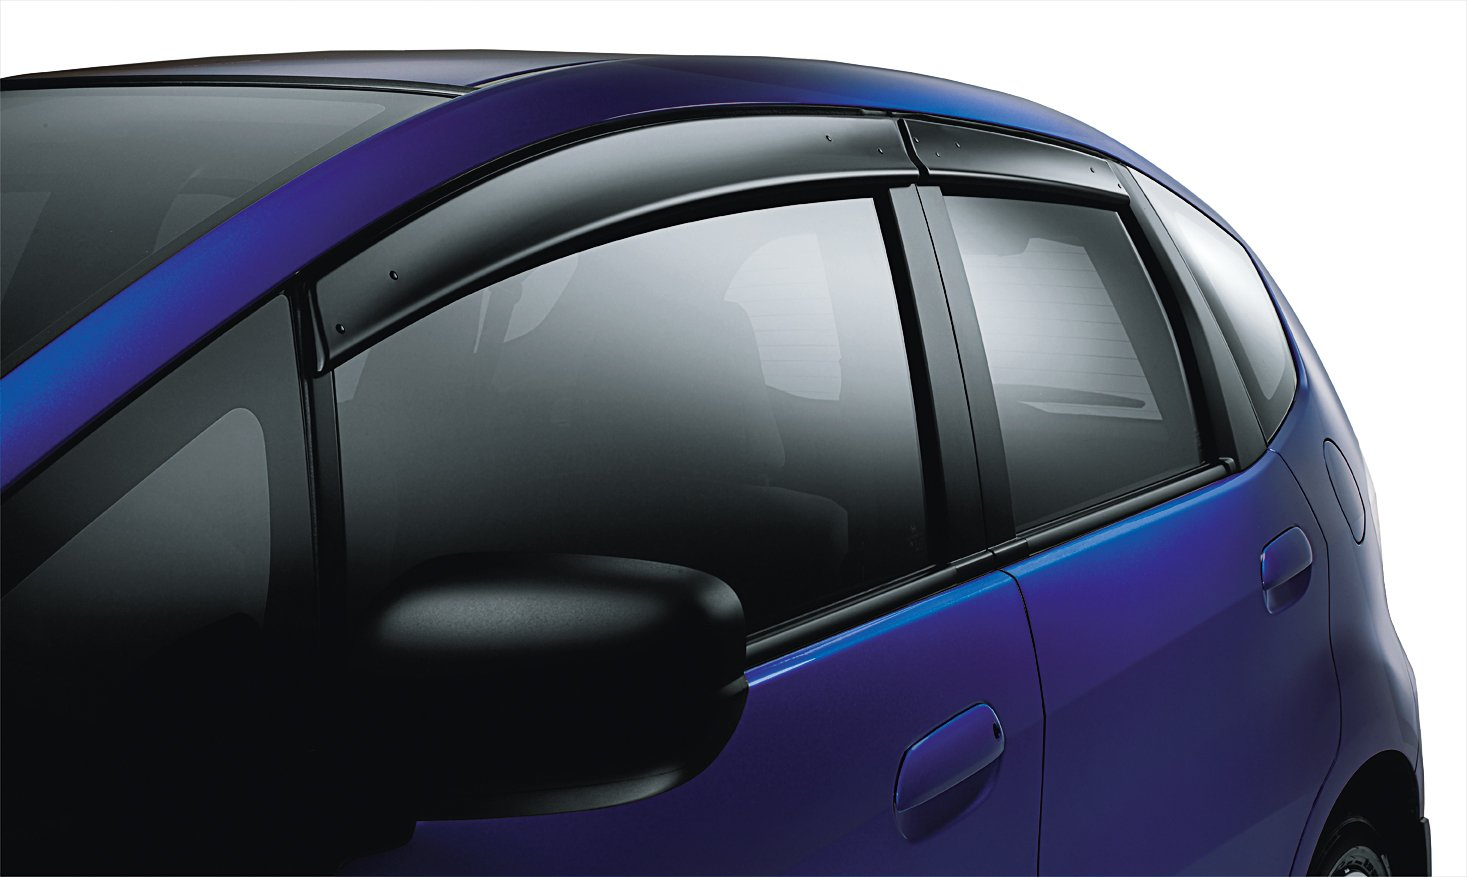 Amazon honda fit genuine factory oem 08r04 tk6 100a door amazon honda fit genuine factory oem 08r04 tk6 100a door visors 2009 2011 set of 4 for all doors automotive fandeluxe Images